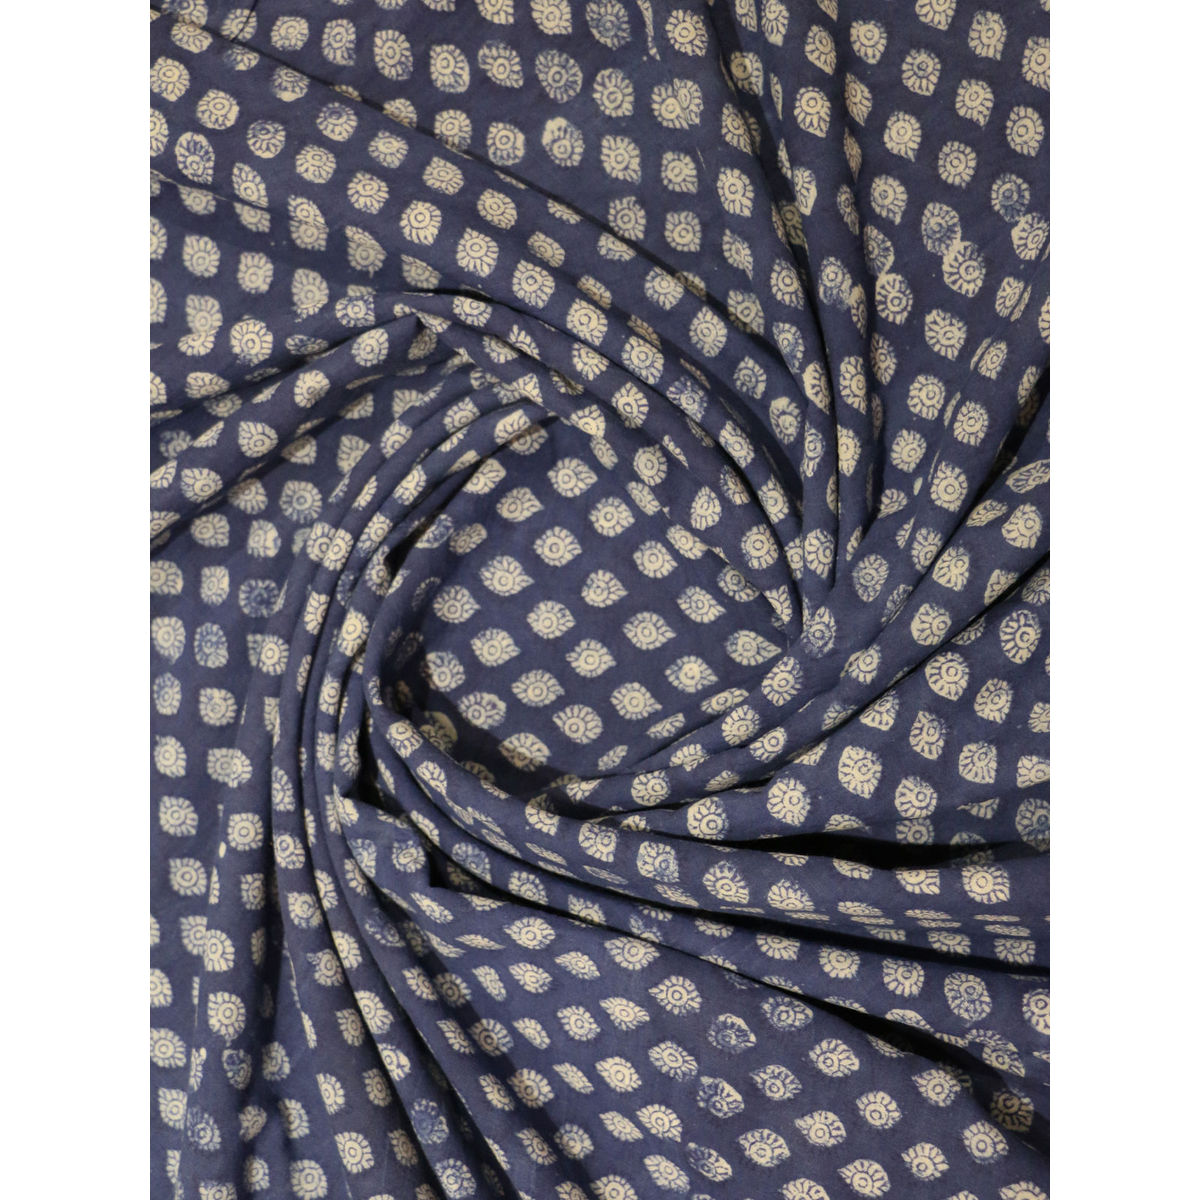 Buy indigo color block printed cotton fabric online for Printed cotton fabric